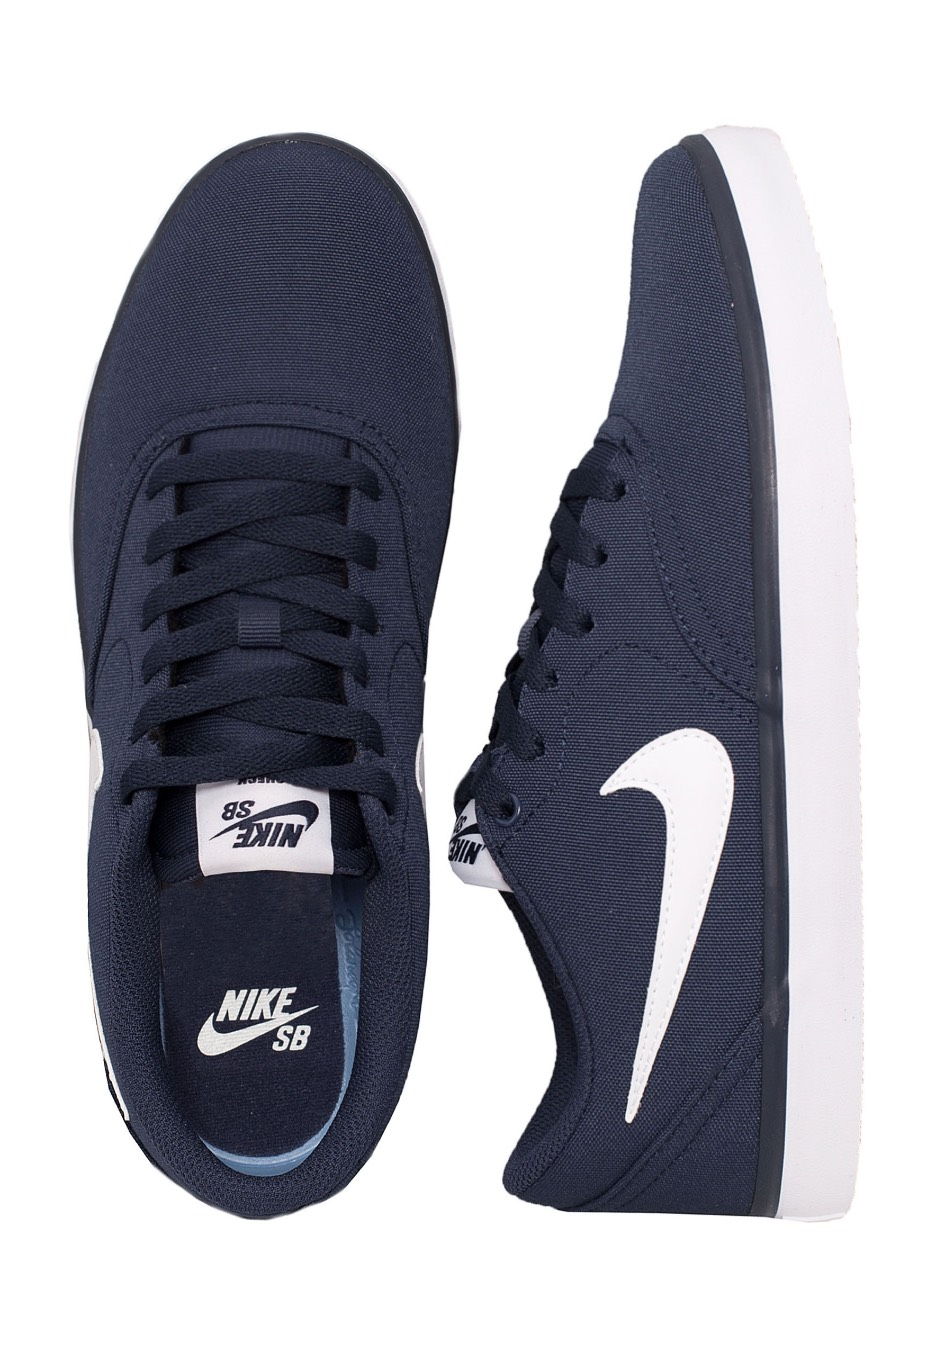 check out 92744 a48c8 Nike - SB Check Solarsoft Canvas Midnight Navy White - Shoes - Streetwear  Shop - Impericon.com UK